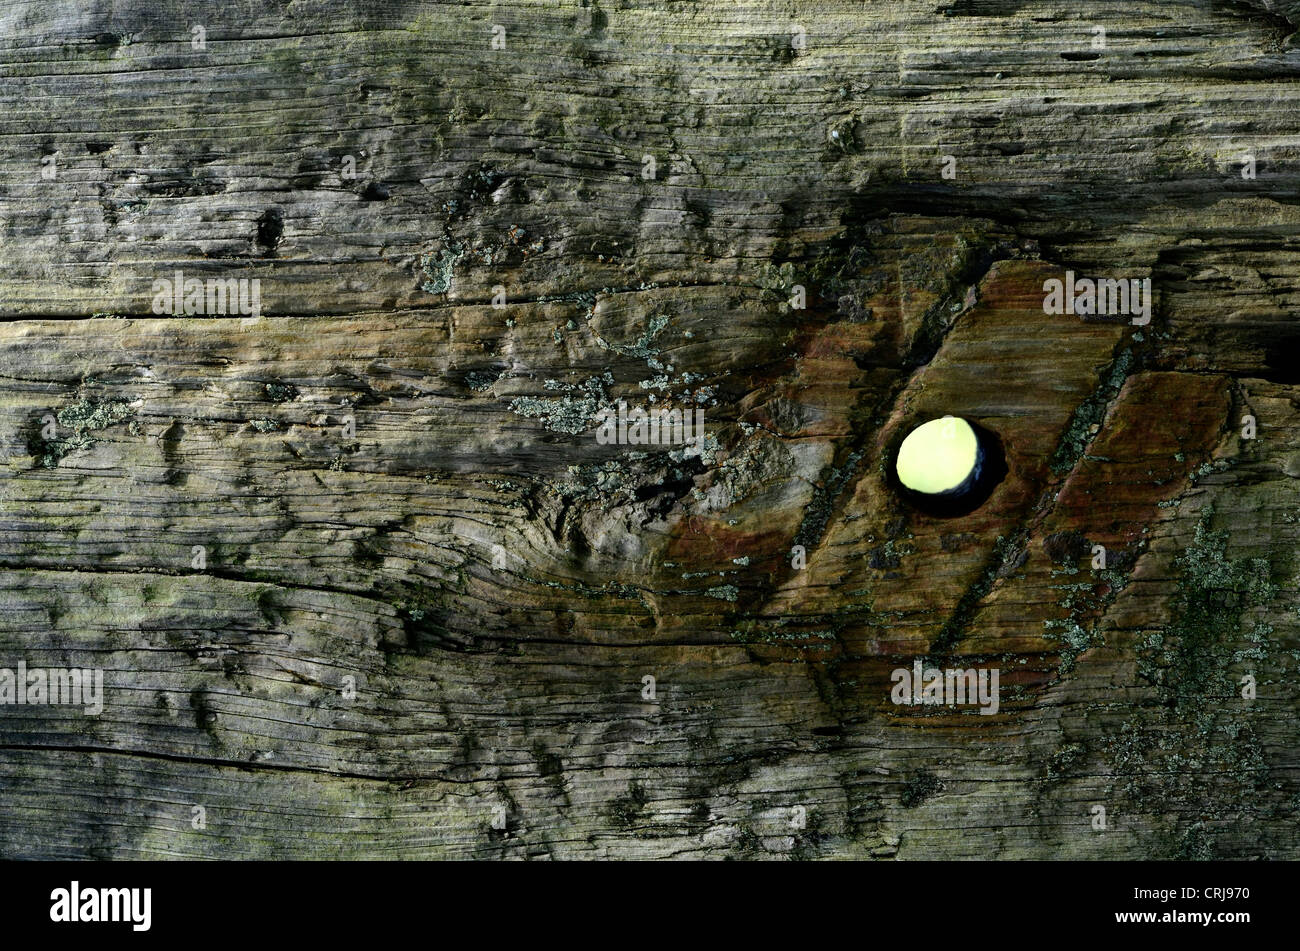 Weathered railway sleeper with vestigial trace of iron boltwork. Peep hole metaphor, what lies beyond, the unknown. - Stock Image